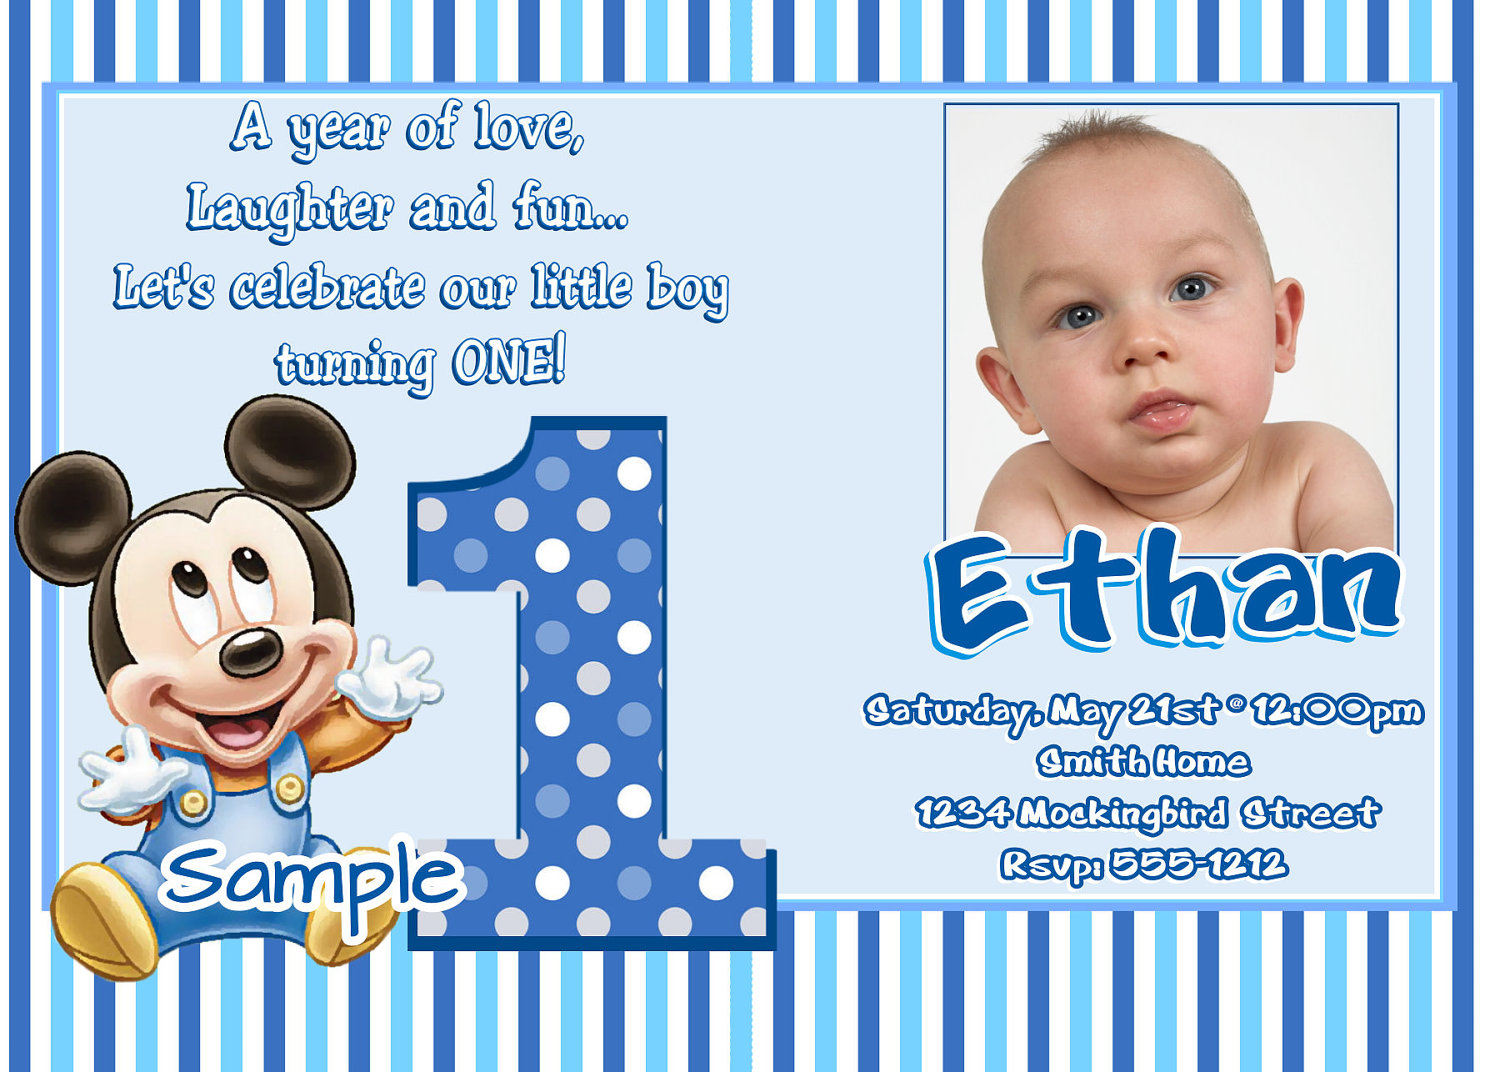 create birthday invitation card with photo free ; 5211b57da72b79e7361789891ed6b508